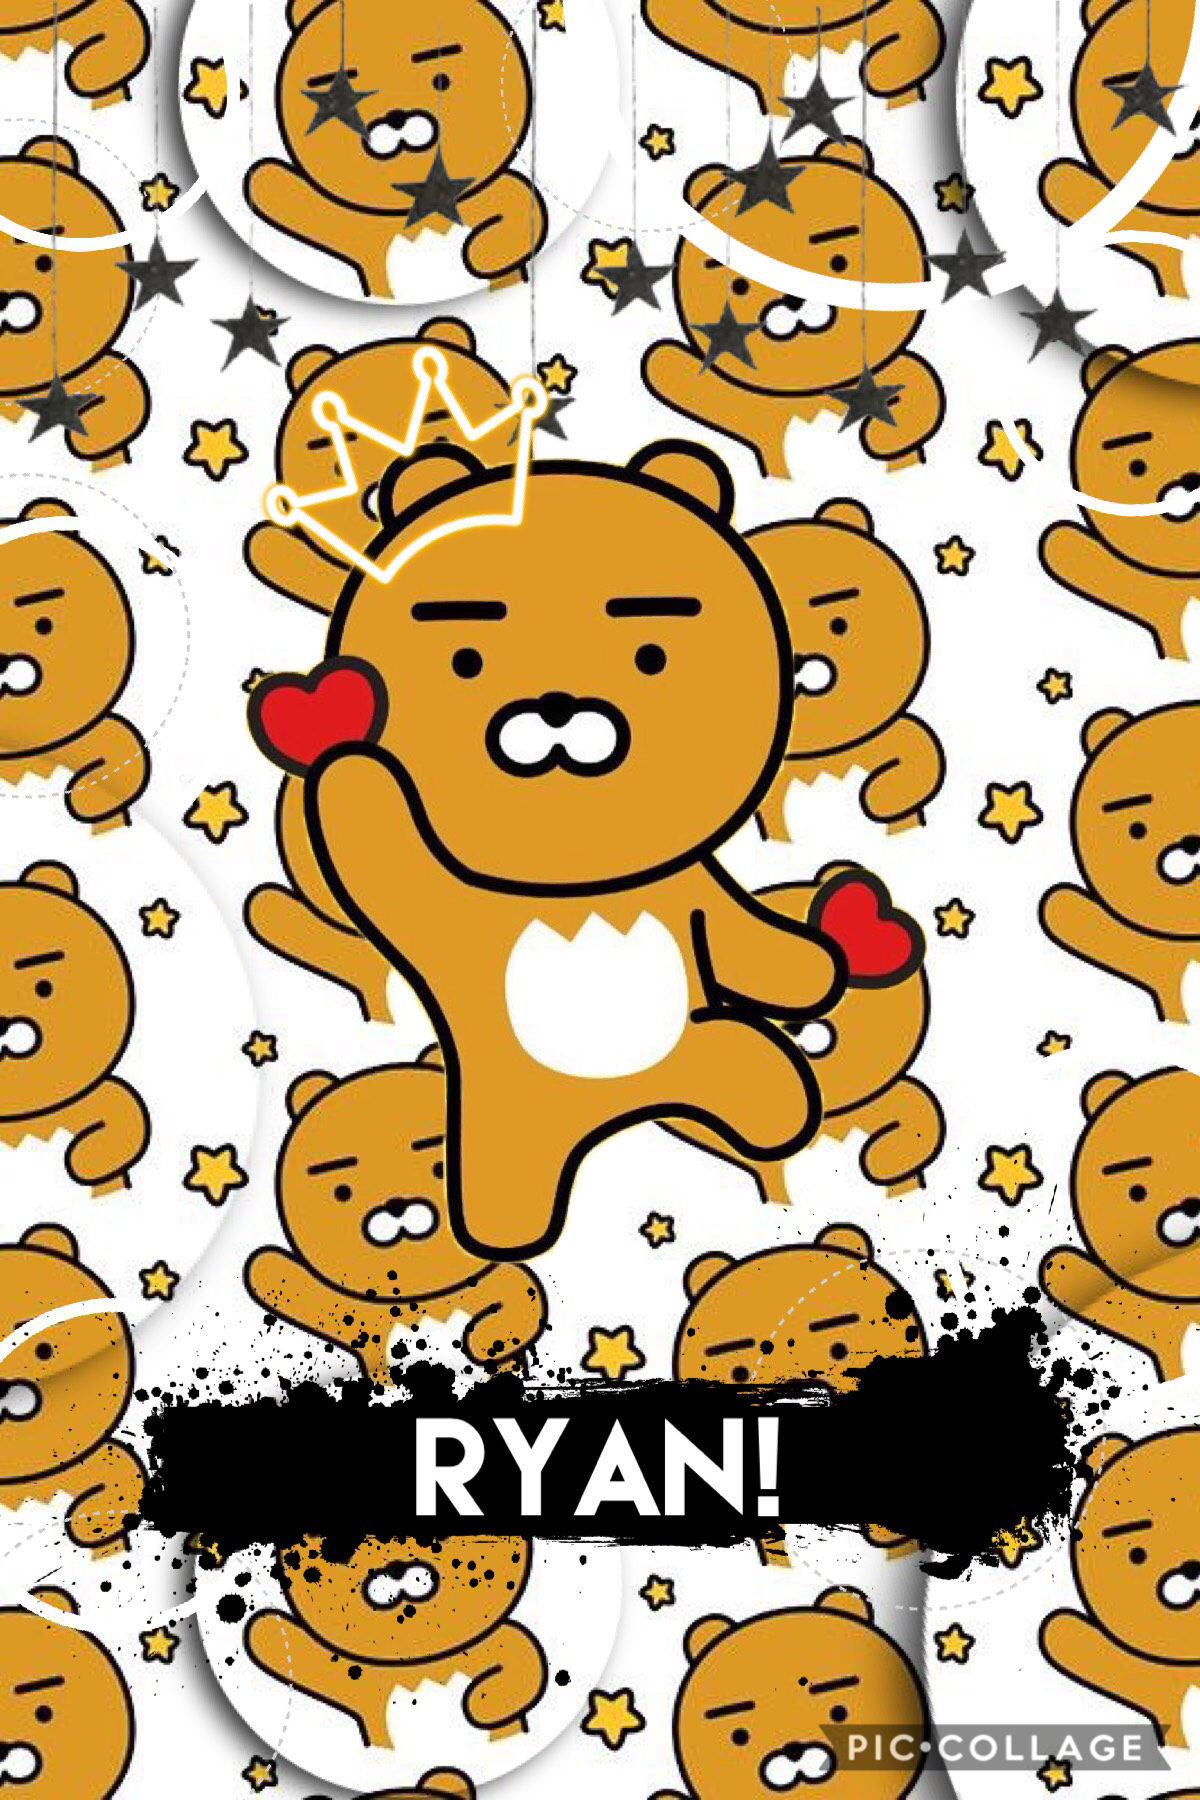 Ryan Loves You All!